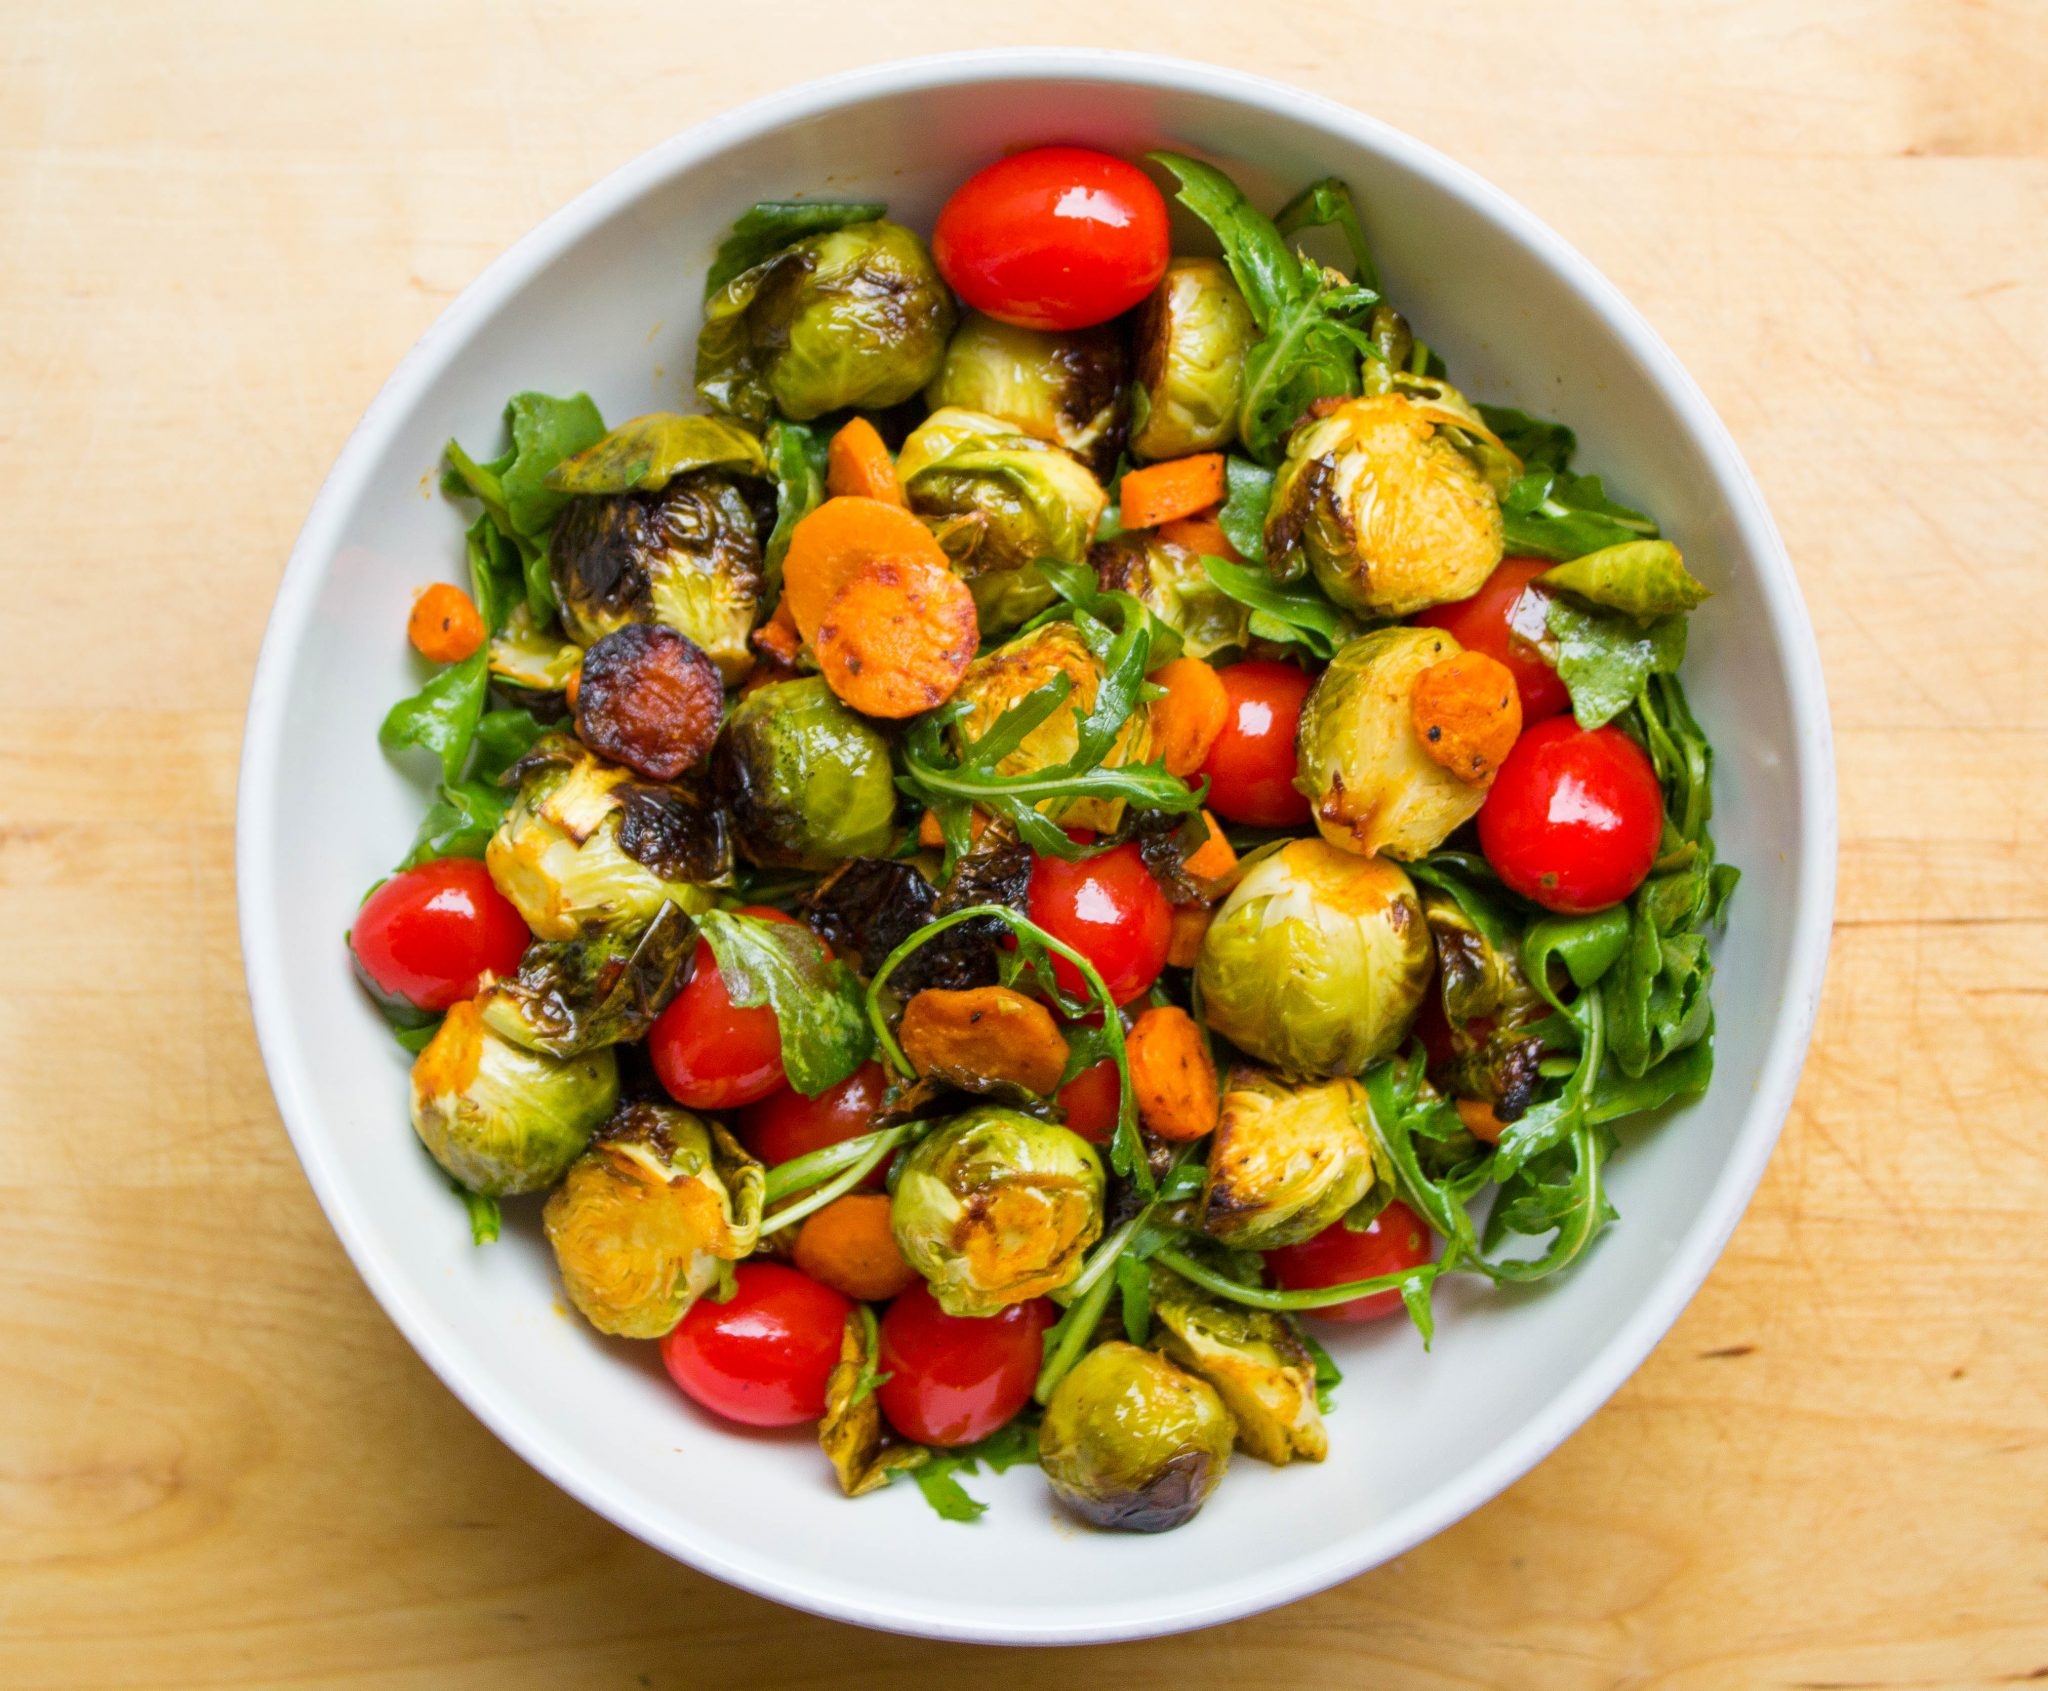 Siracha-Roasted-Brussel-Sprout-Salad-8.jpg